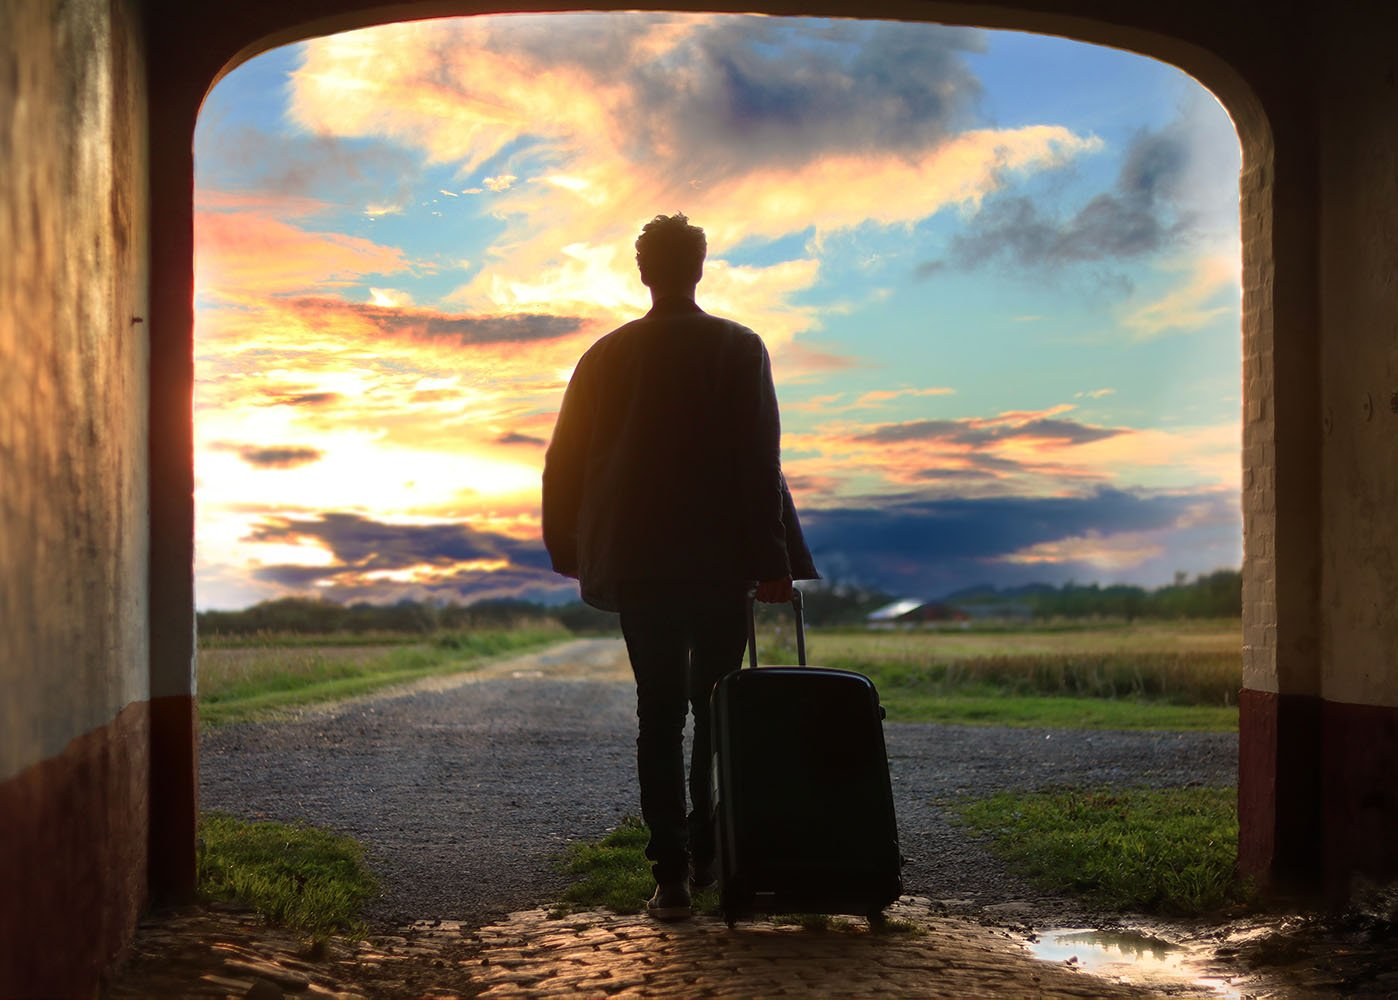 Man holding luggage, facing a meadow.